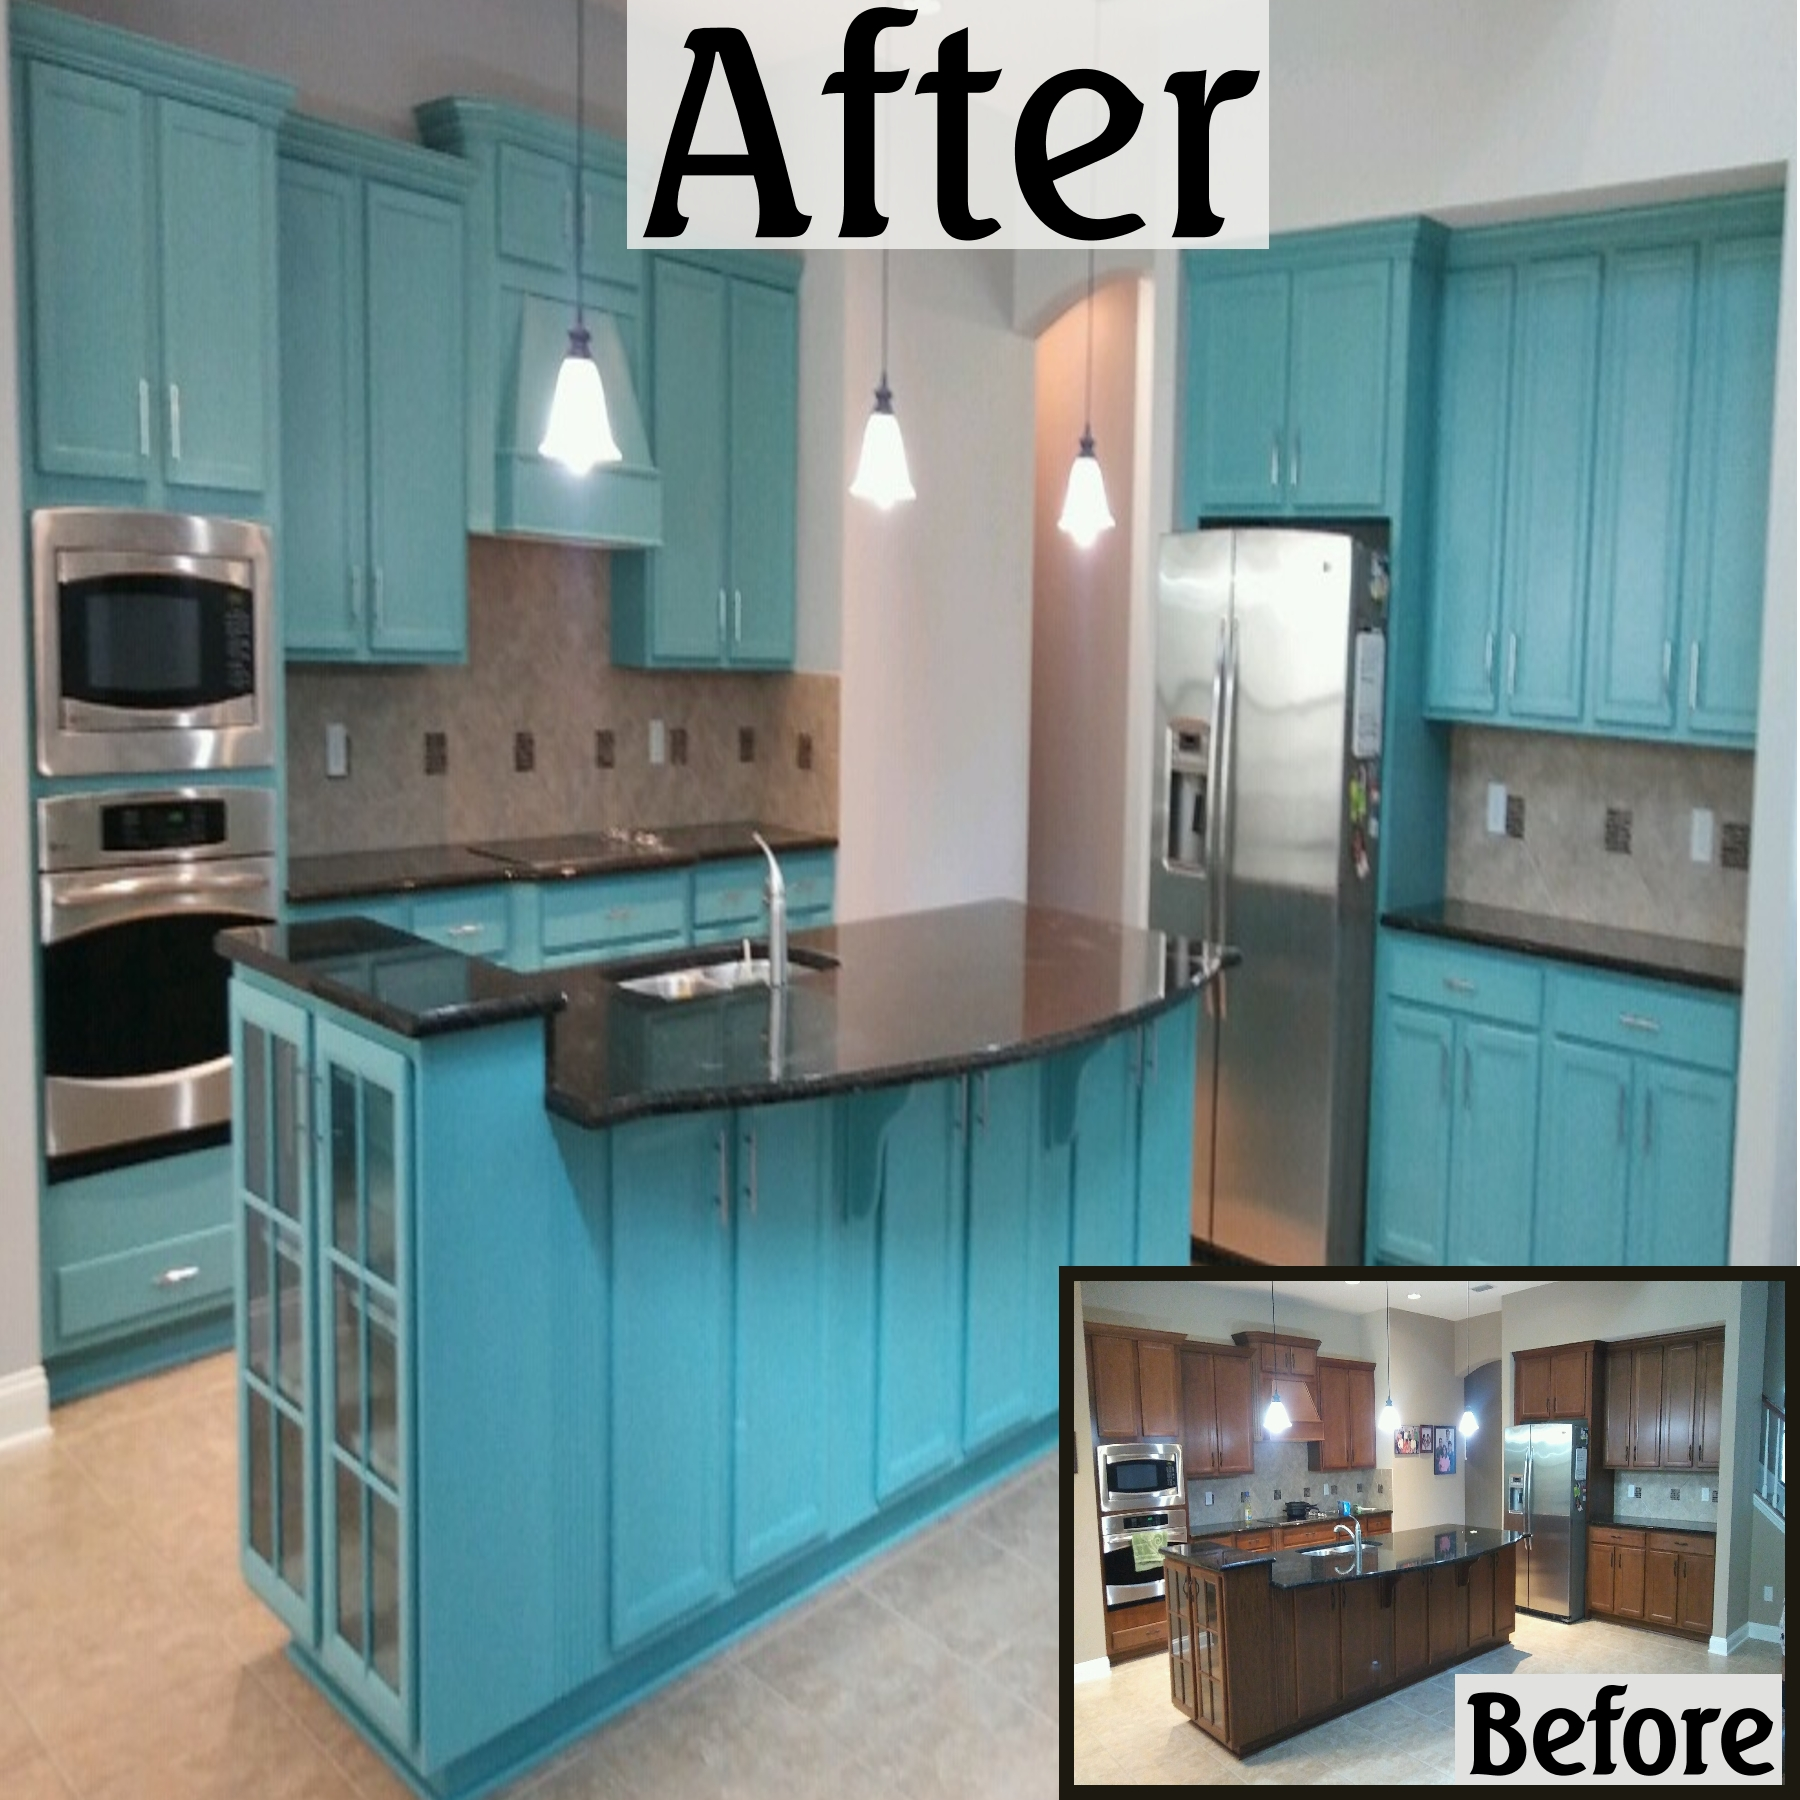 Can You Repaint Kitchen Cabinets: Kitchen Cabinet Painting Jacksonville FL: Don't Replace